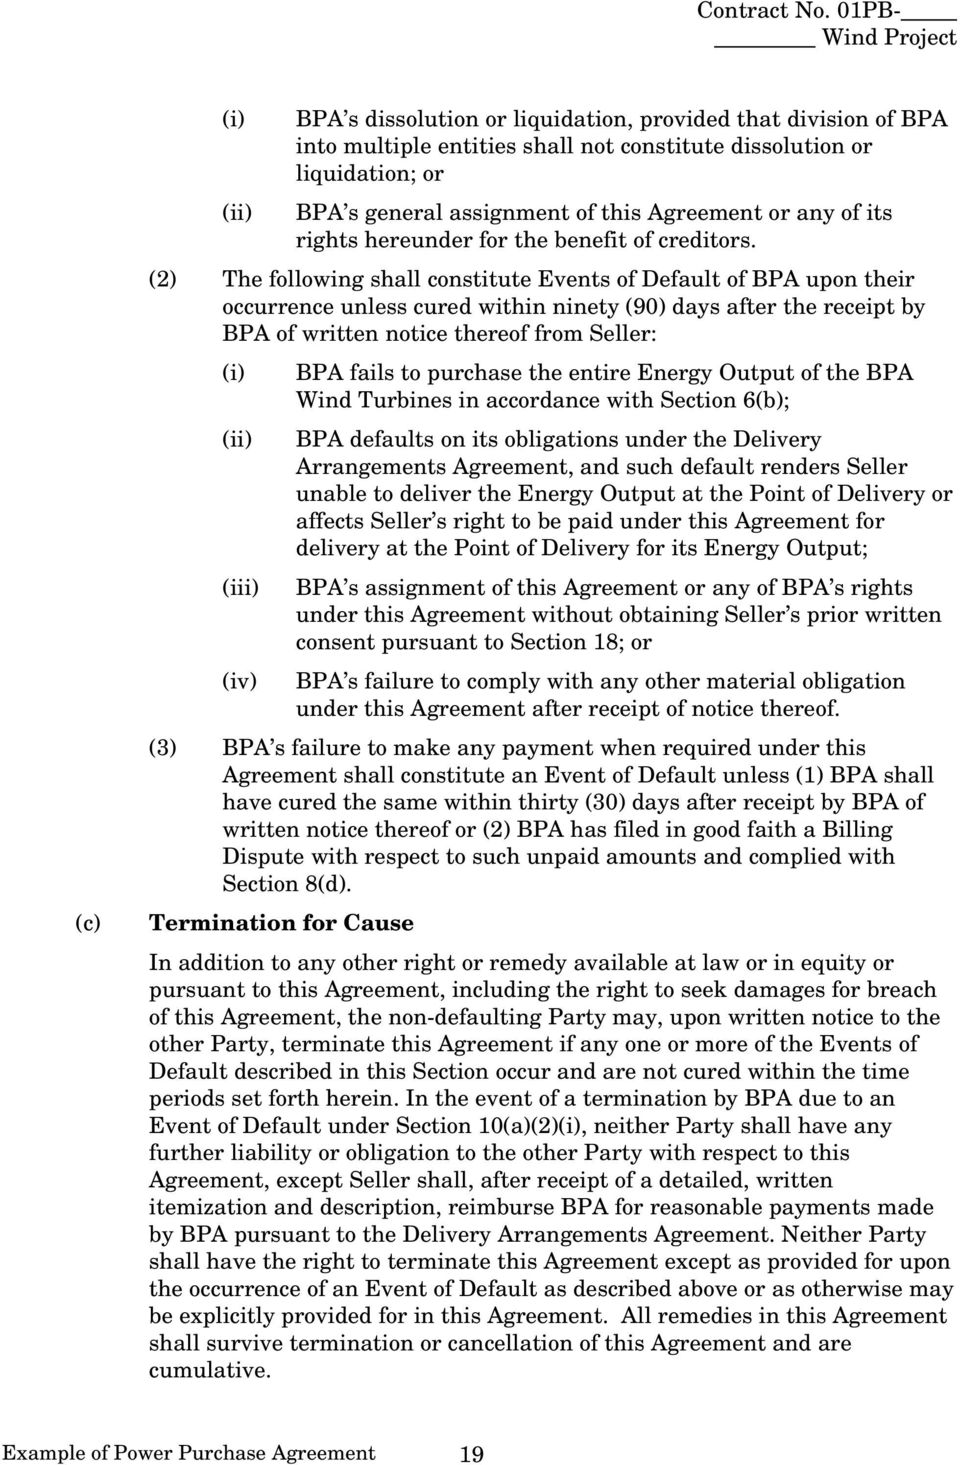 (2) The following shall constitute Events of Default of BPA upon their occurrence unless cured within ninety (90) days after the receipt by BPA of written notice thereof from Seller: (i) (ii) (iii)